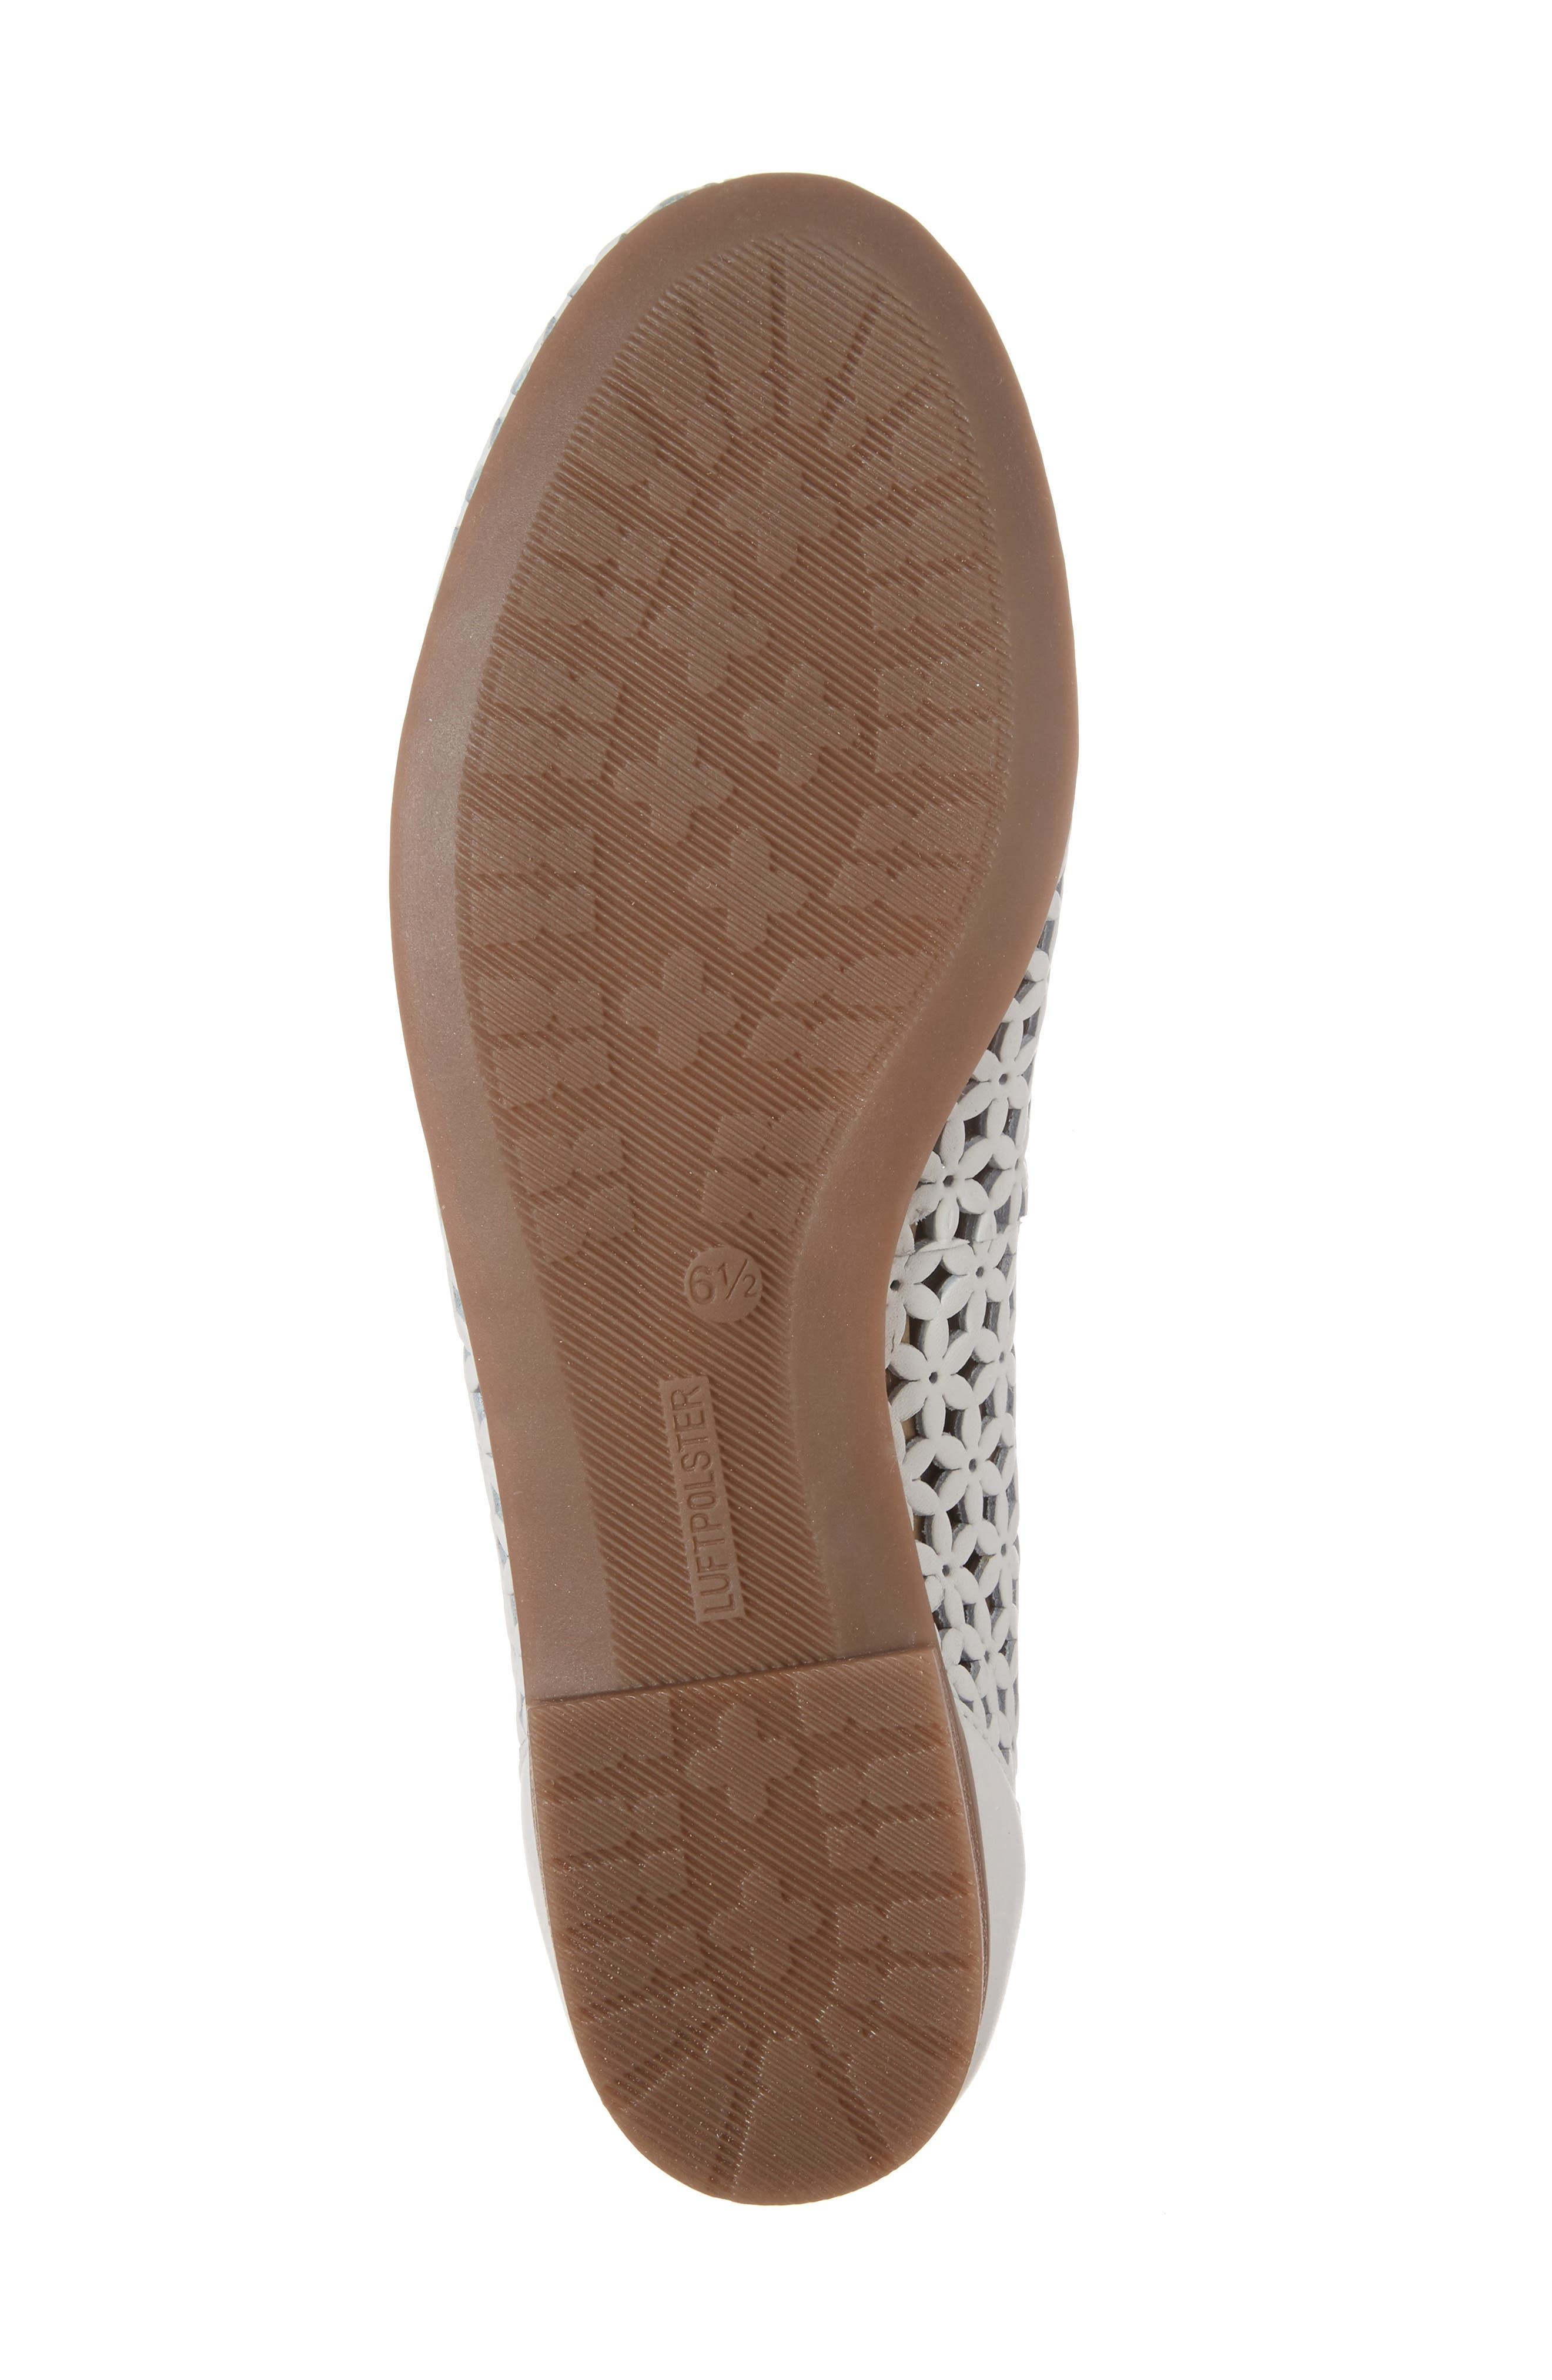 Stephanie Perforated Ballet Flat,                             Alternate thumbnail 6, color,                             White Leather